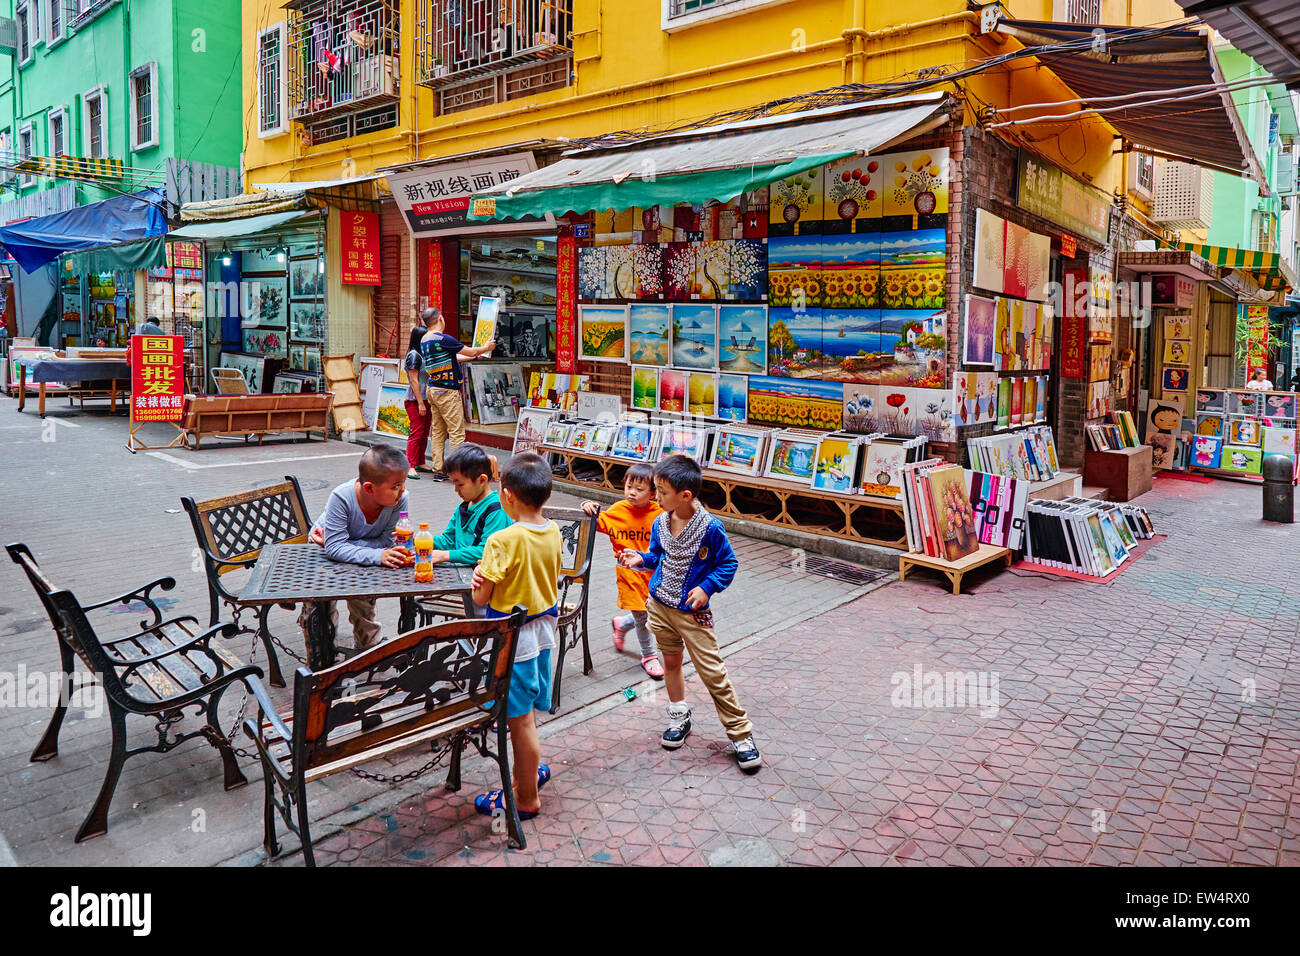 China, Guangdong province, Shenzhen, Dafen oil painting village, Dafen Village is one of the largest production - Stock Image